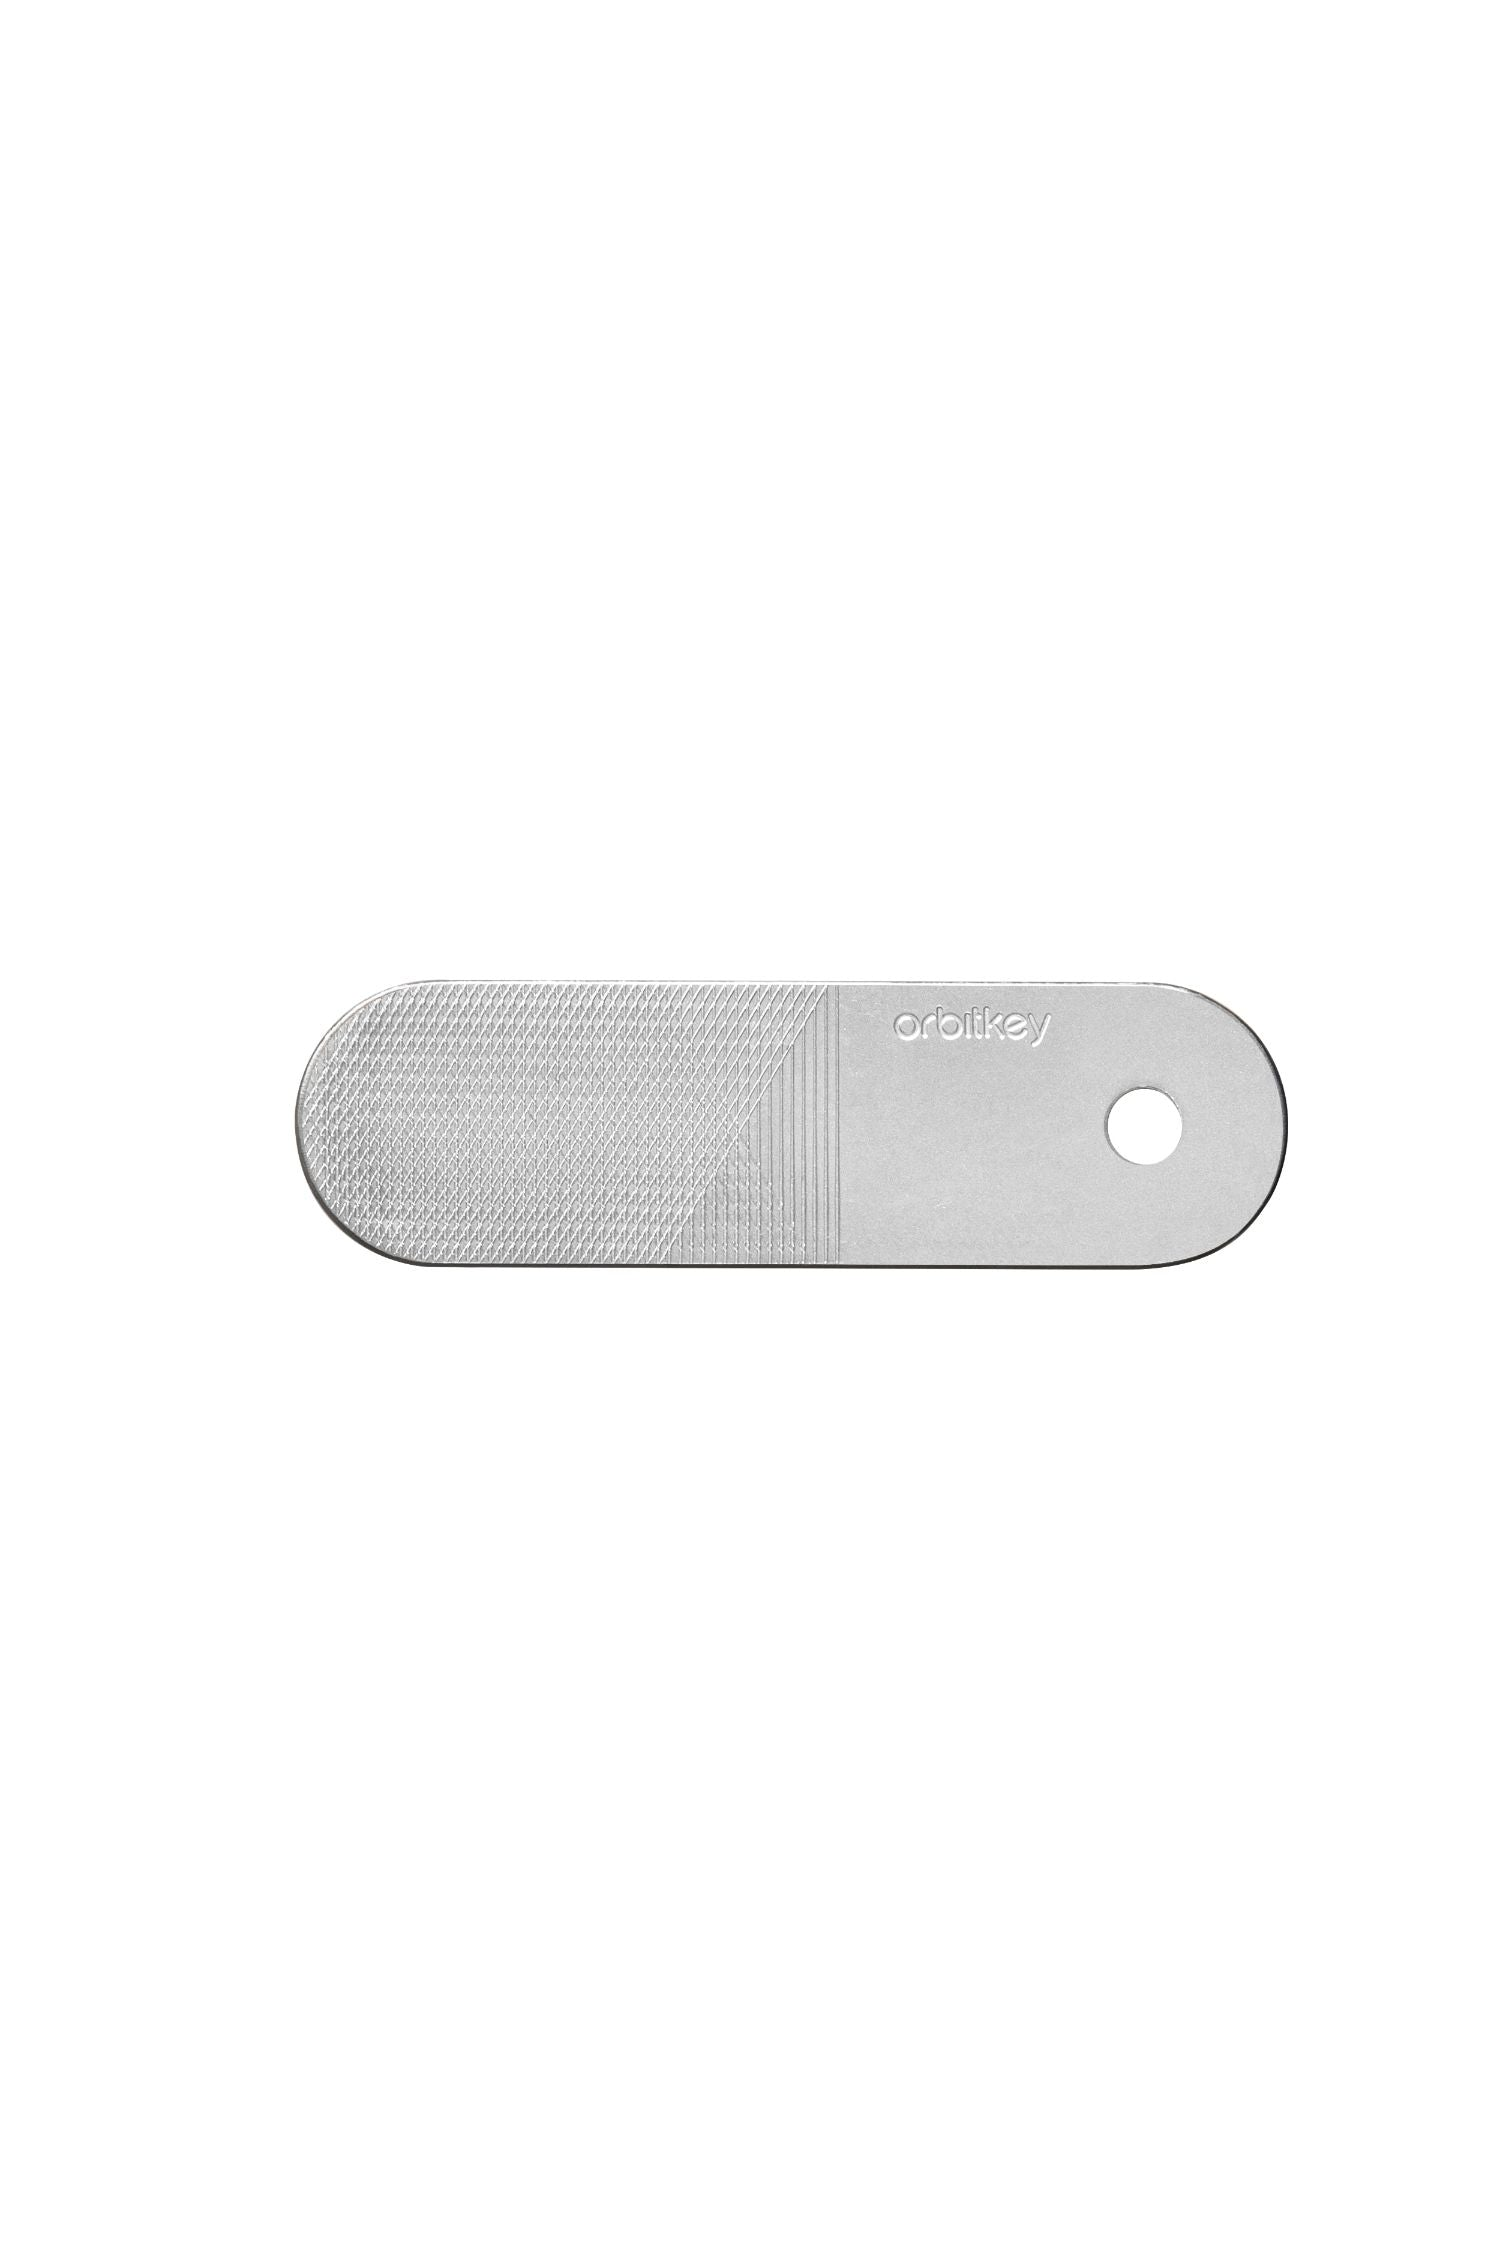 Orbitkey - Nail file/mirror